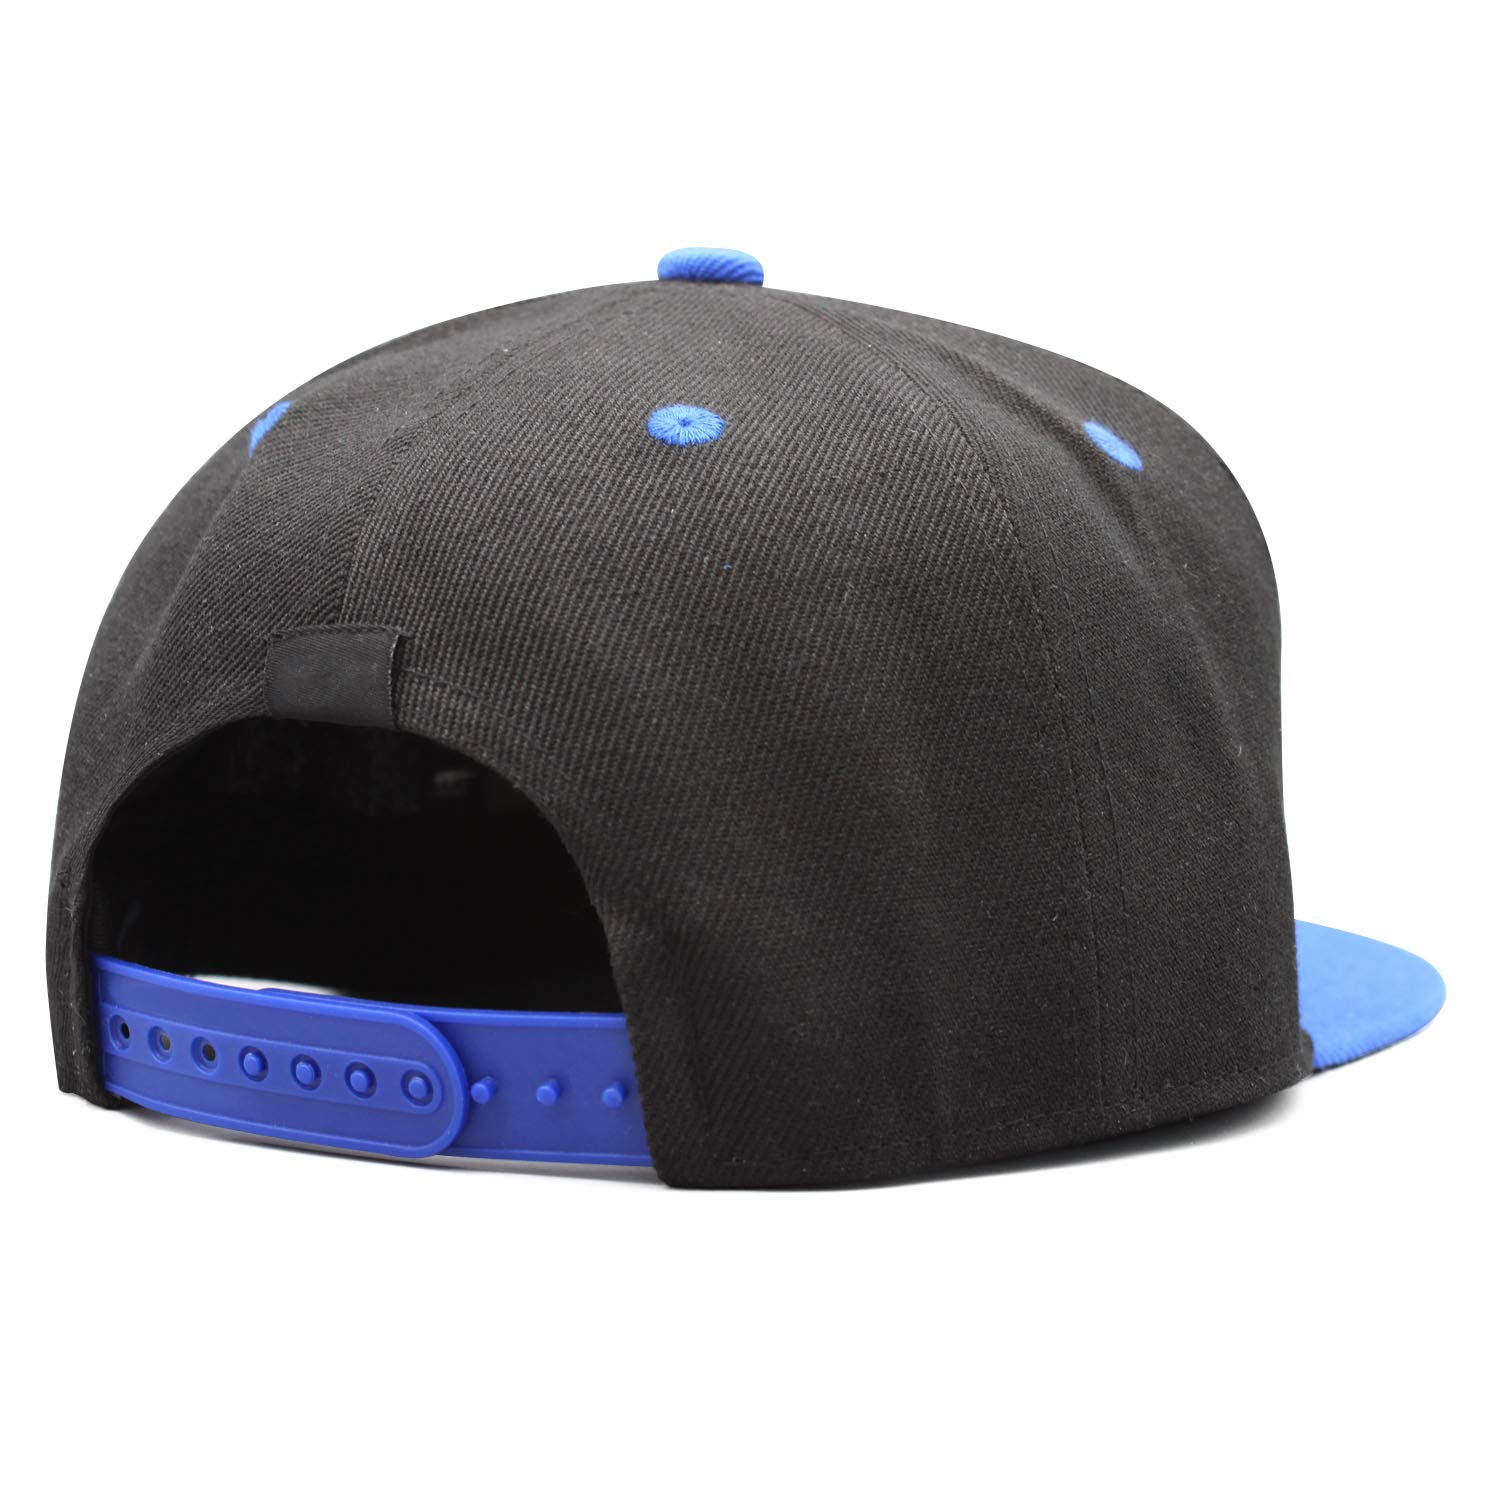 Katy-Perry-candyfornia-Poster Snapback Trucker Cap for Men and Women Clean Up Adjustable Hat One Size